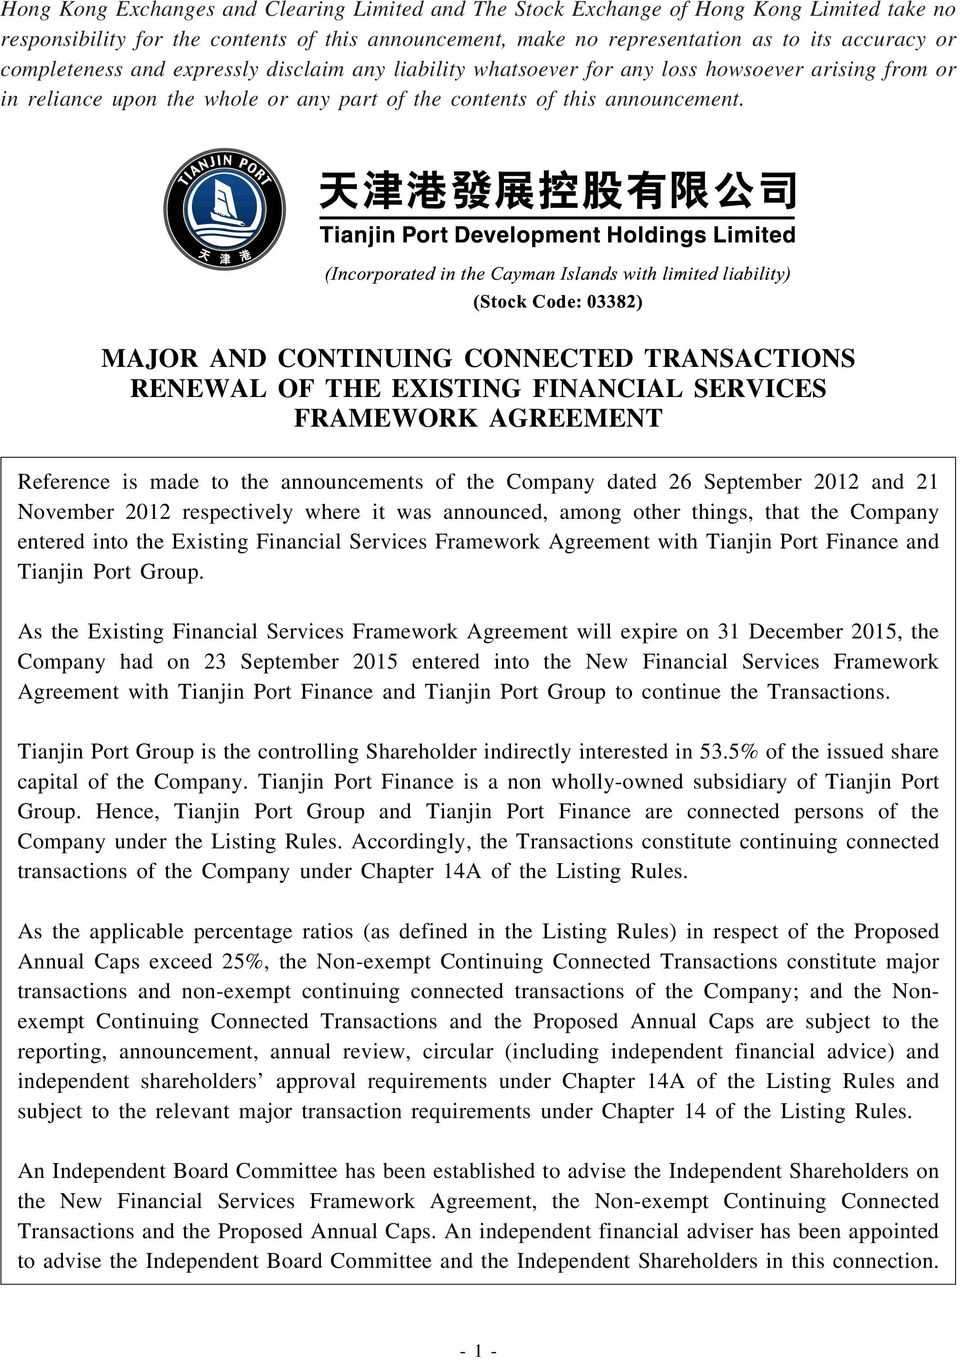 MAJOR AND CONTINUING CONNECTED TRANSACTIONS RENEWAL OF THE EXISTING FINANCIAL SERVICES FRAMEWORK AGREEMENT Reference is made to the announcements of the Company dated 26 September 2012 and 21